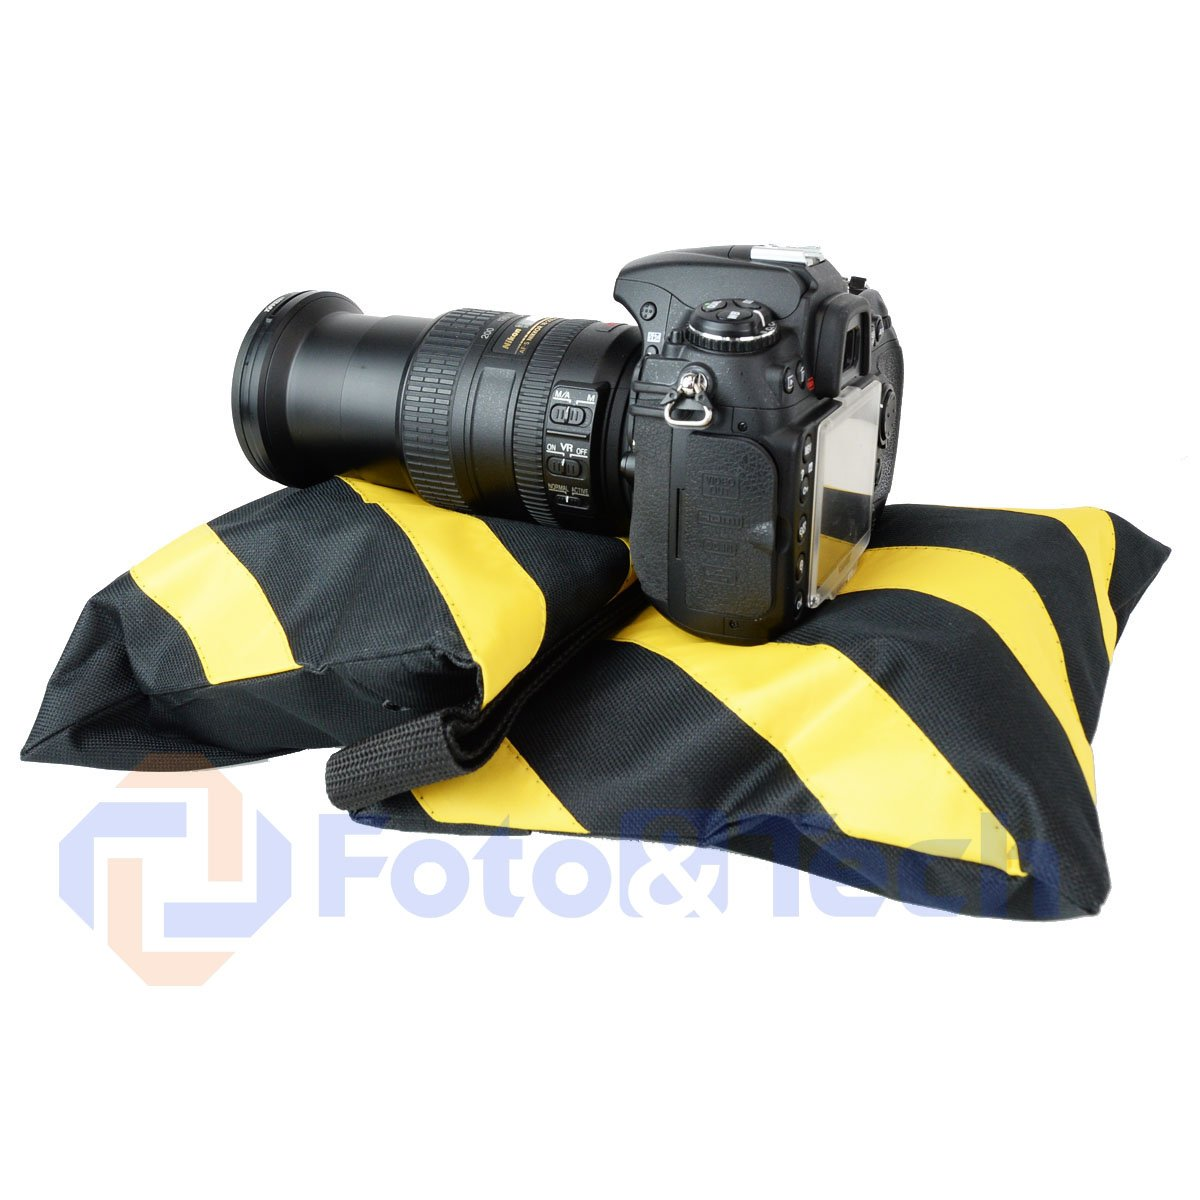 Foto&Tech 4 Pack Water Resistant 600D Oxford Heavy Duty with Internal Metal Support Sand Bag Weight Bags Saddle Bag Holds 20 LBS for Photo Video Studio Stand Tripod Indoor Outdoor (Yellow) by Foto&Tech (Image #7)